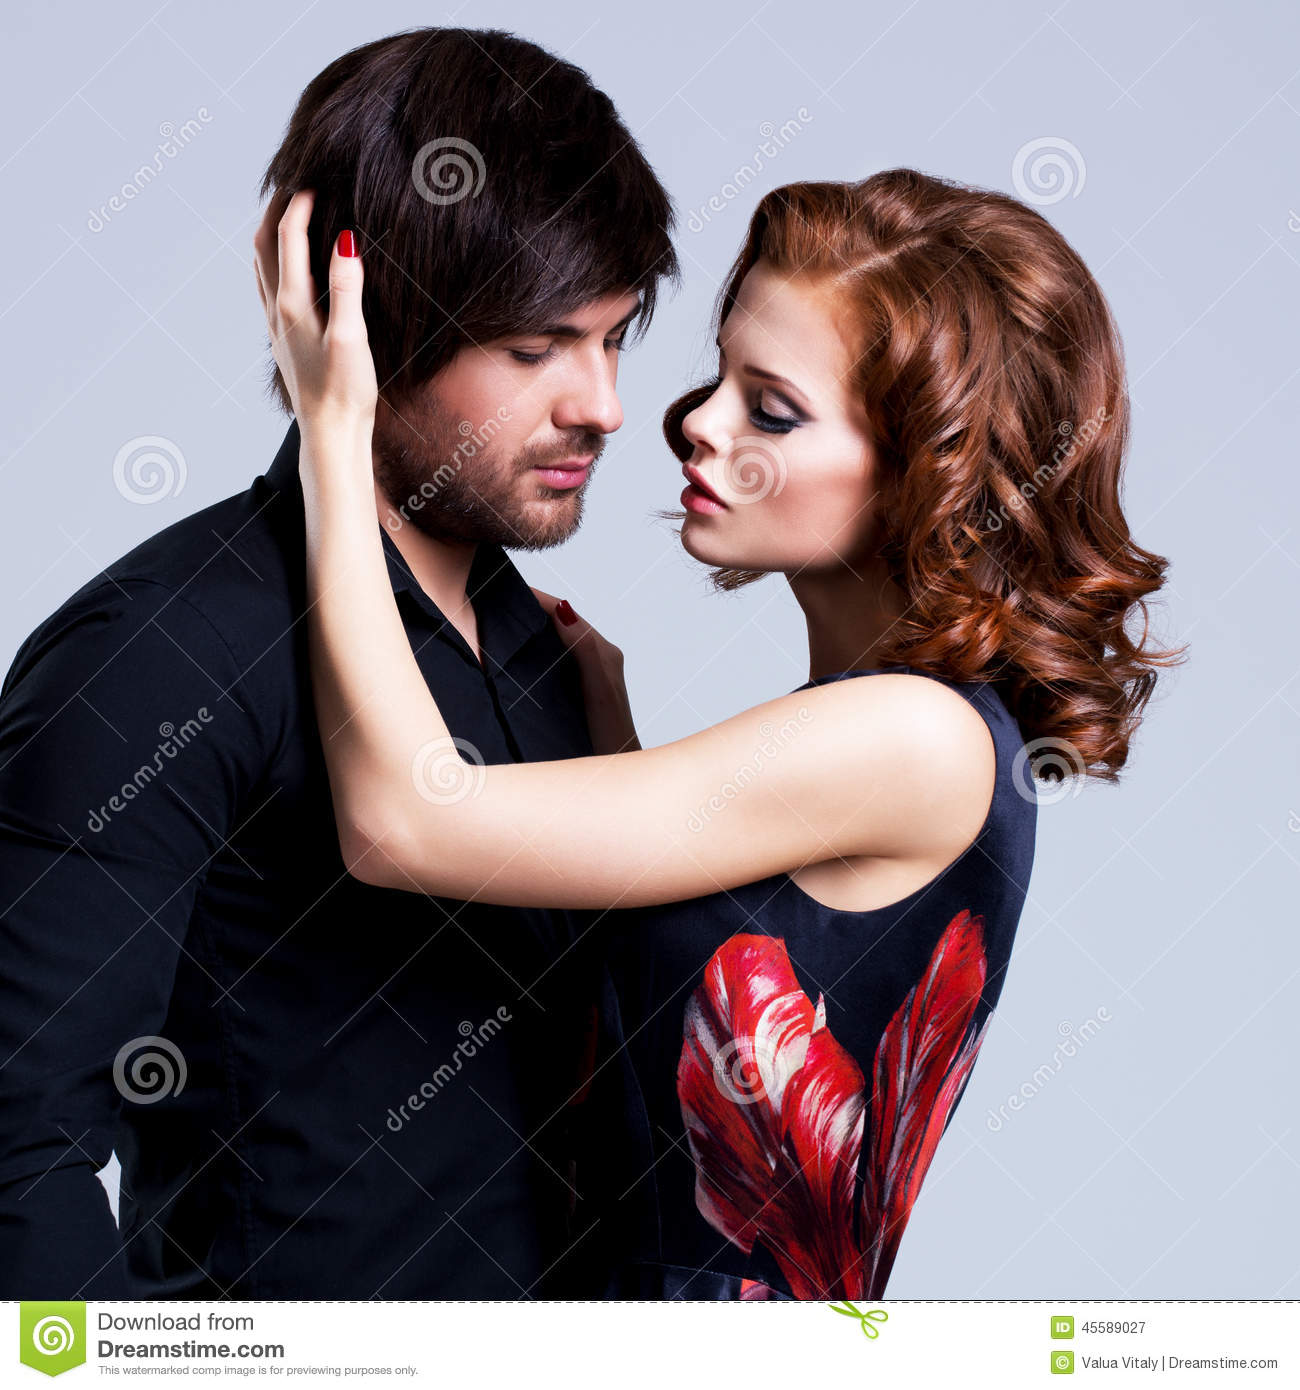 sexy love couple photo download